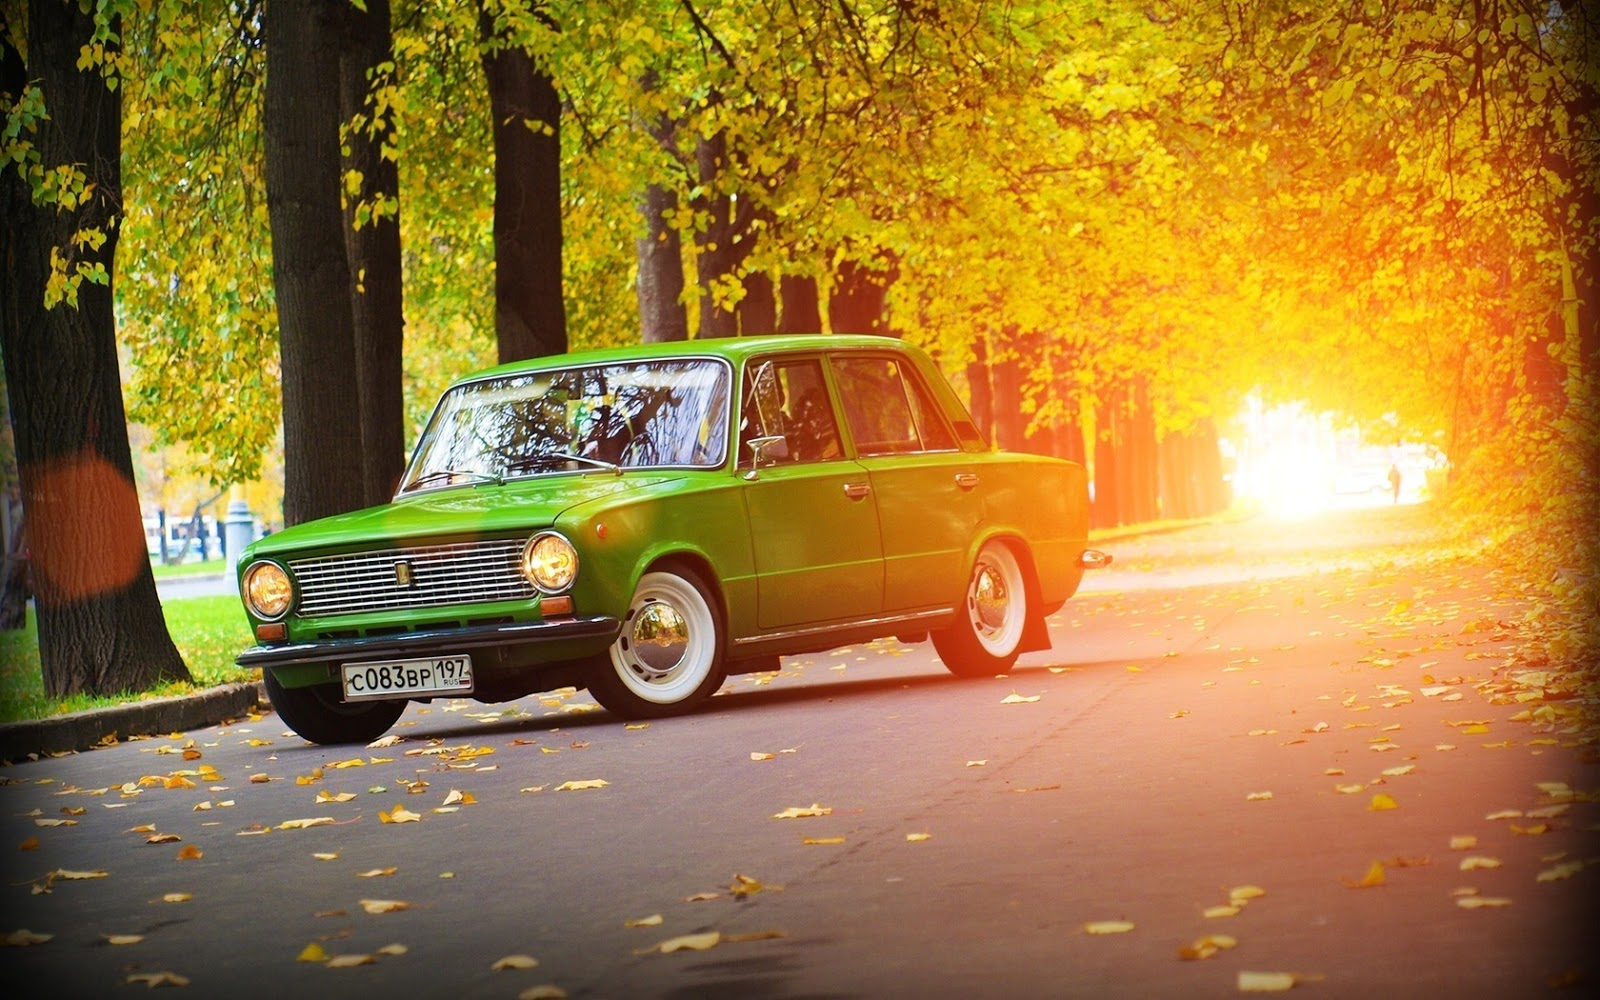 Car In Forrest Hd Wallpaper Vaz 2101 Review And Photos